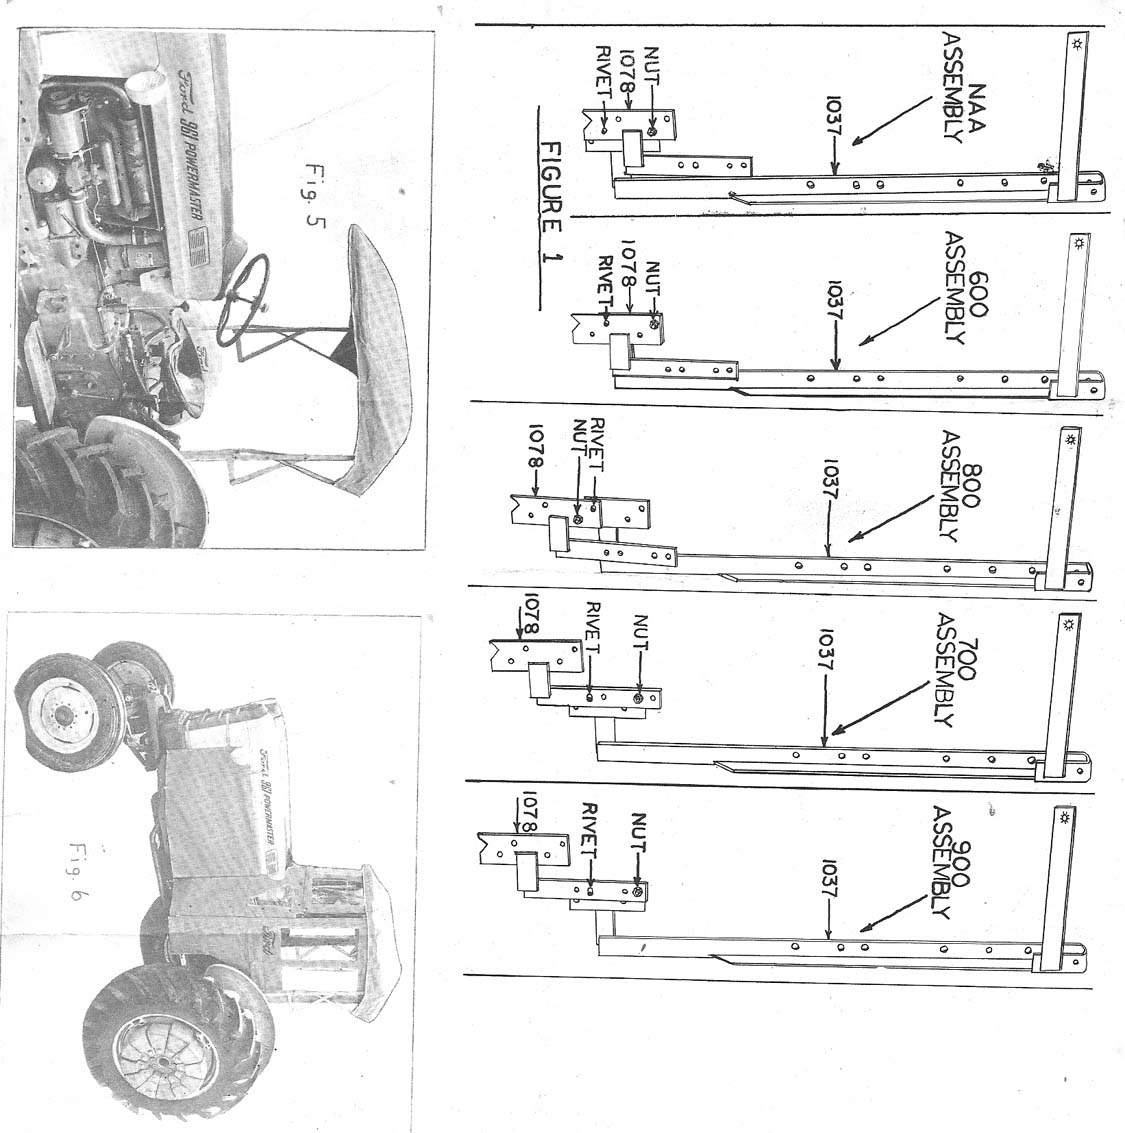 ford 3930 schematics